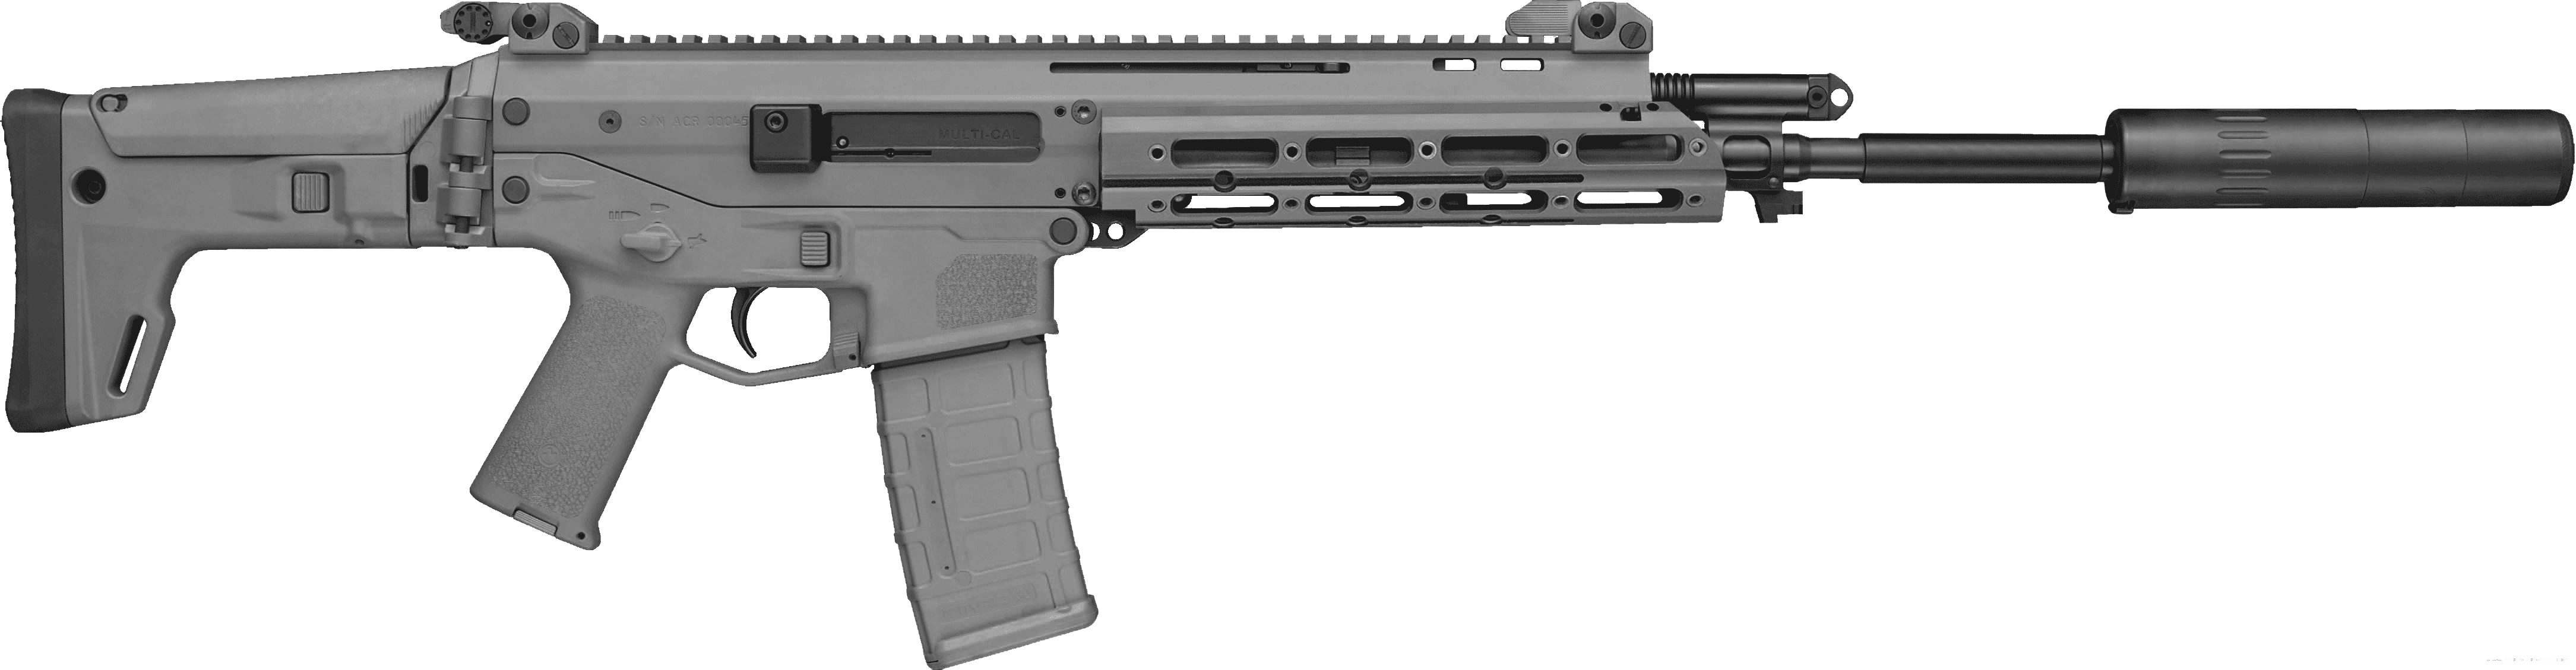 Assault thirty one isolated. Transparent rifle picture black and white